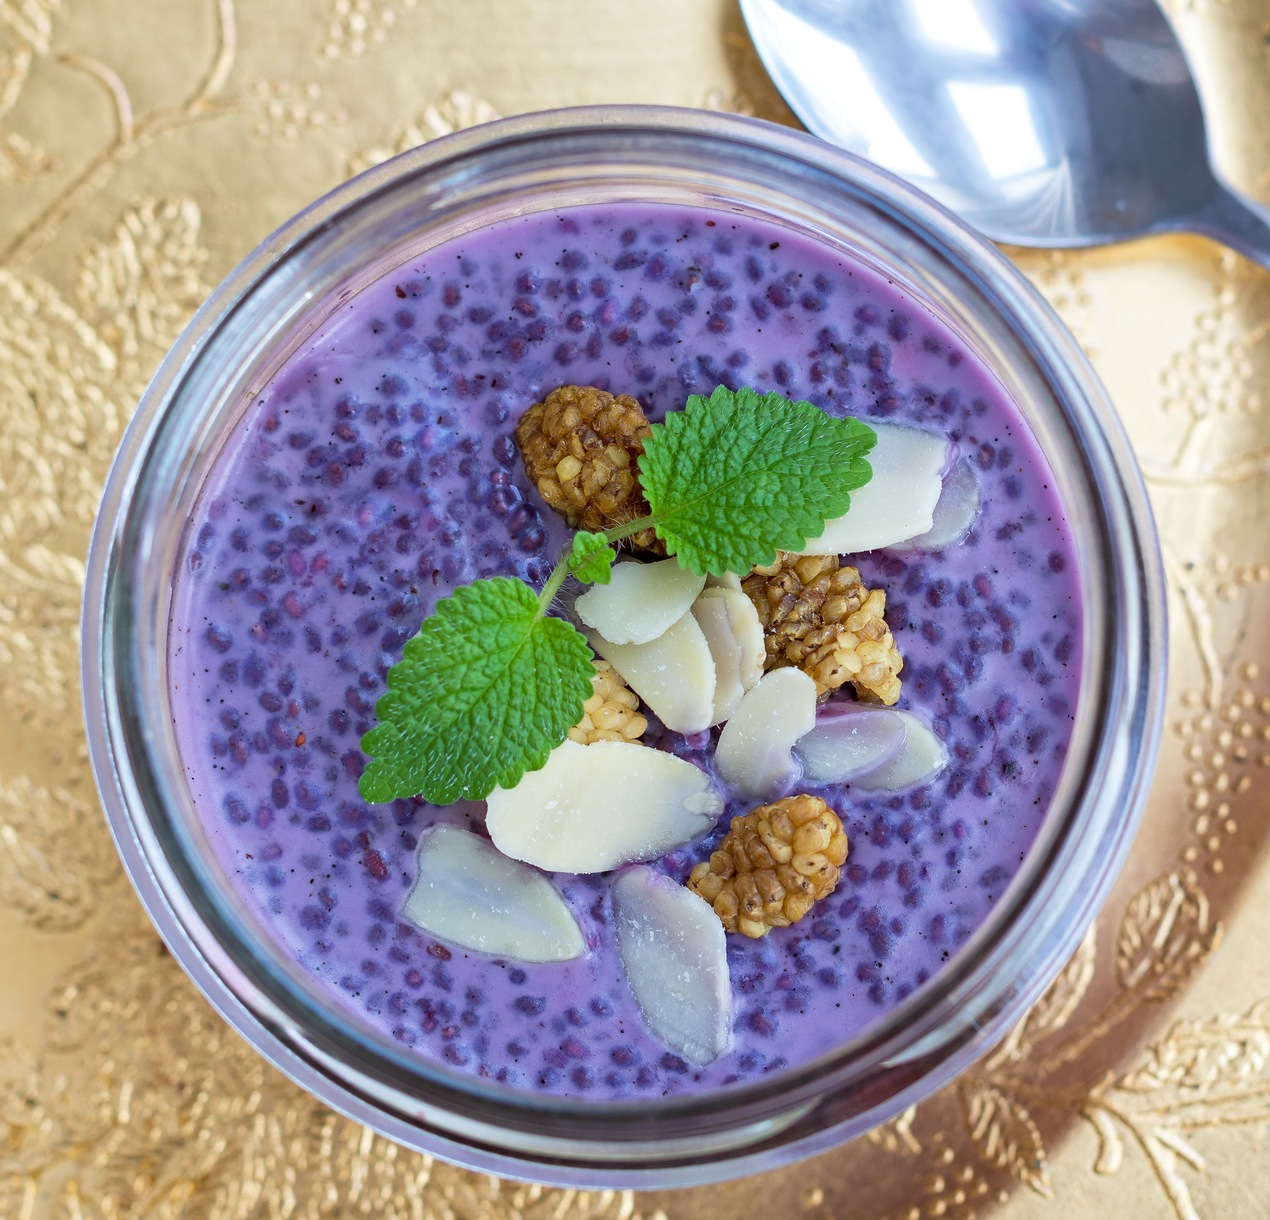 Purple blueberry chia pudding with topping